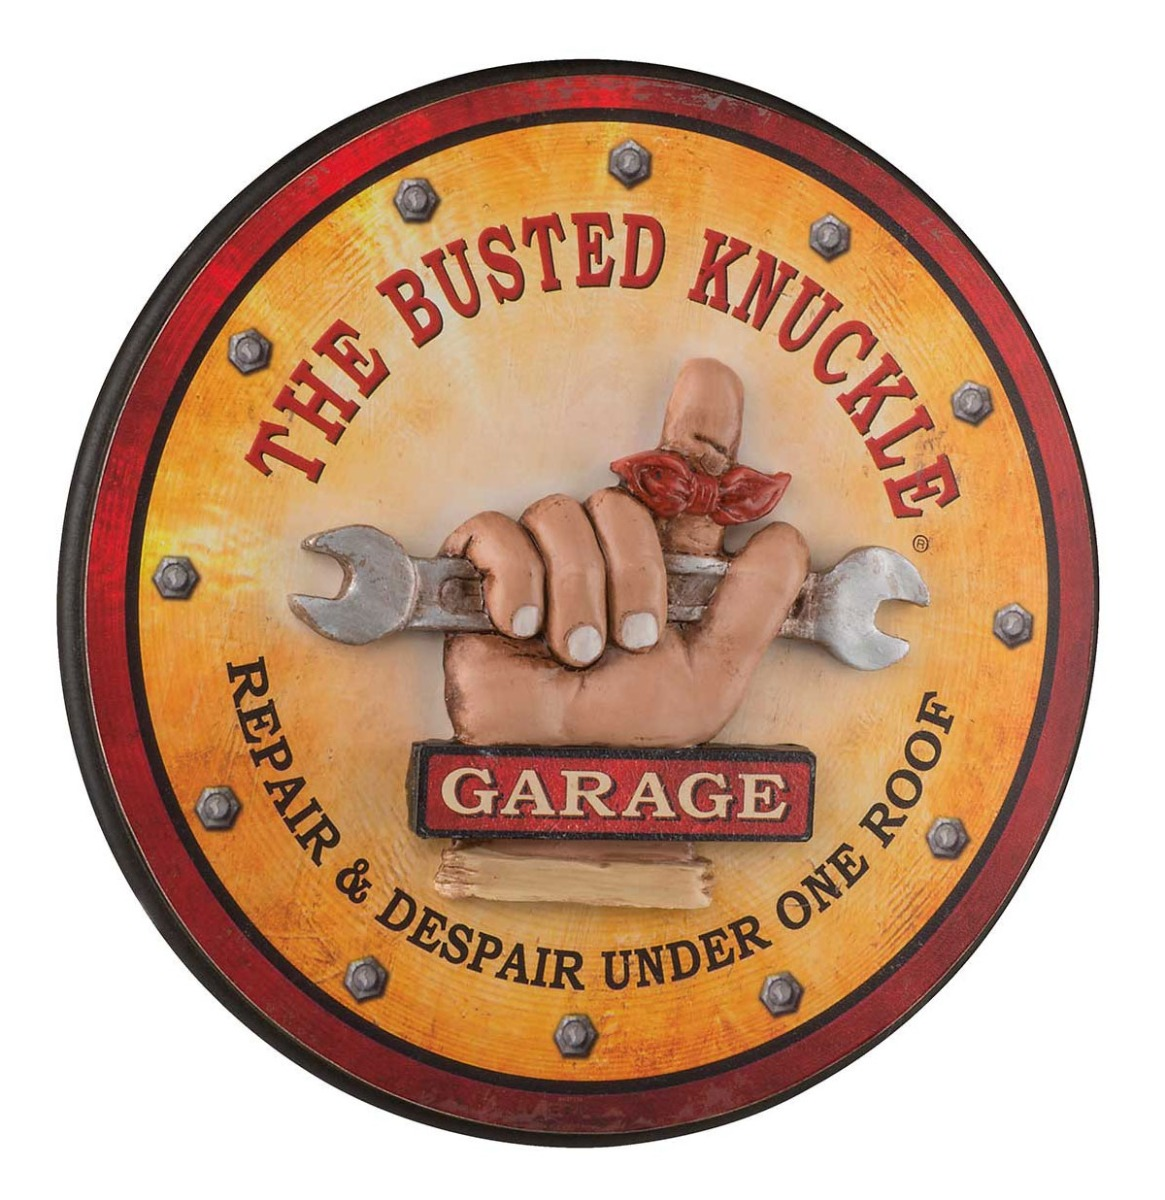 Busted Knuckle Garage Round Pub Sign